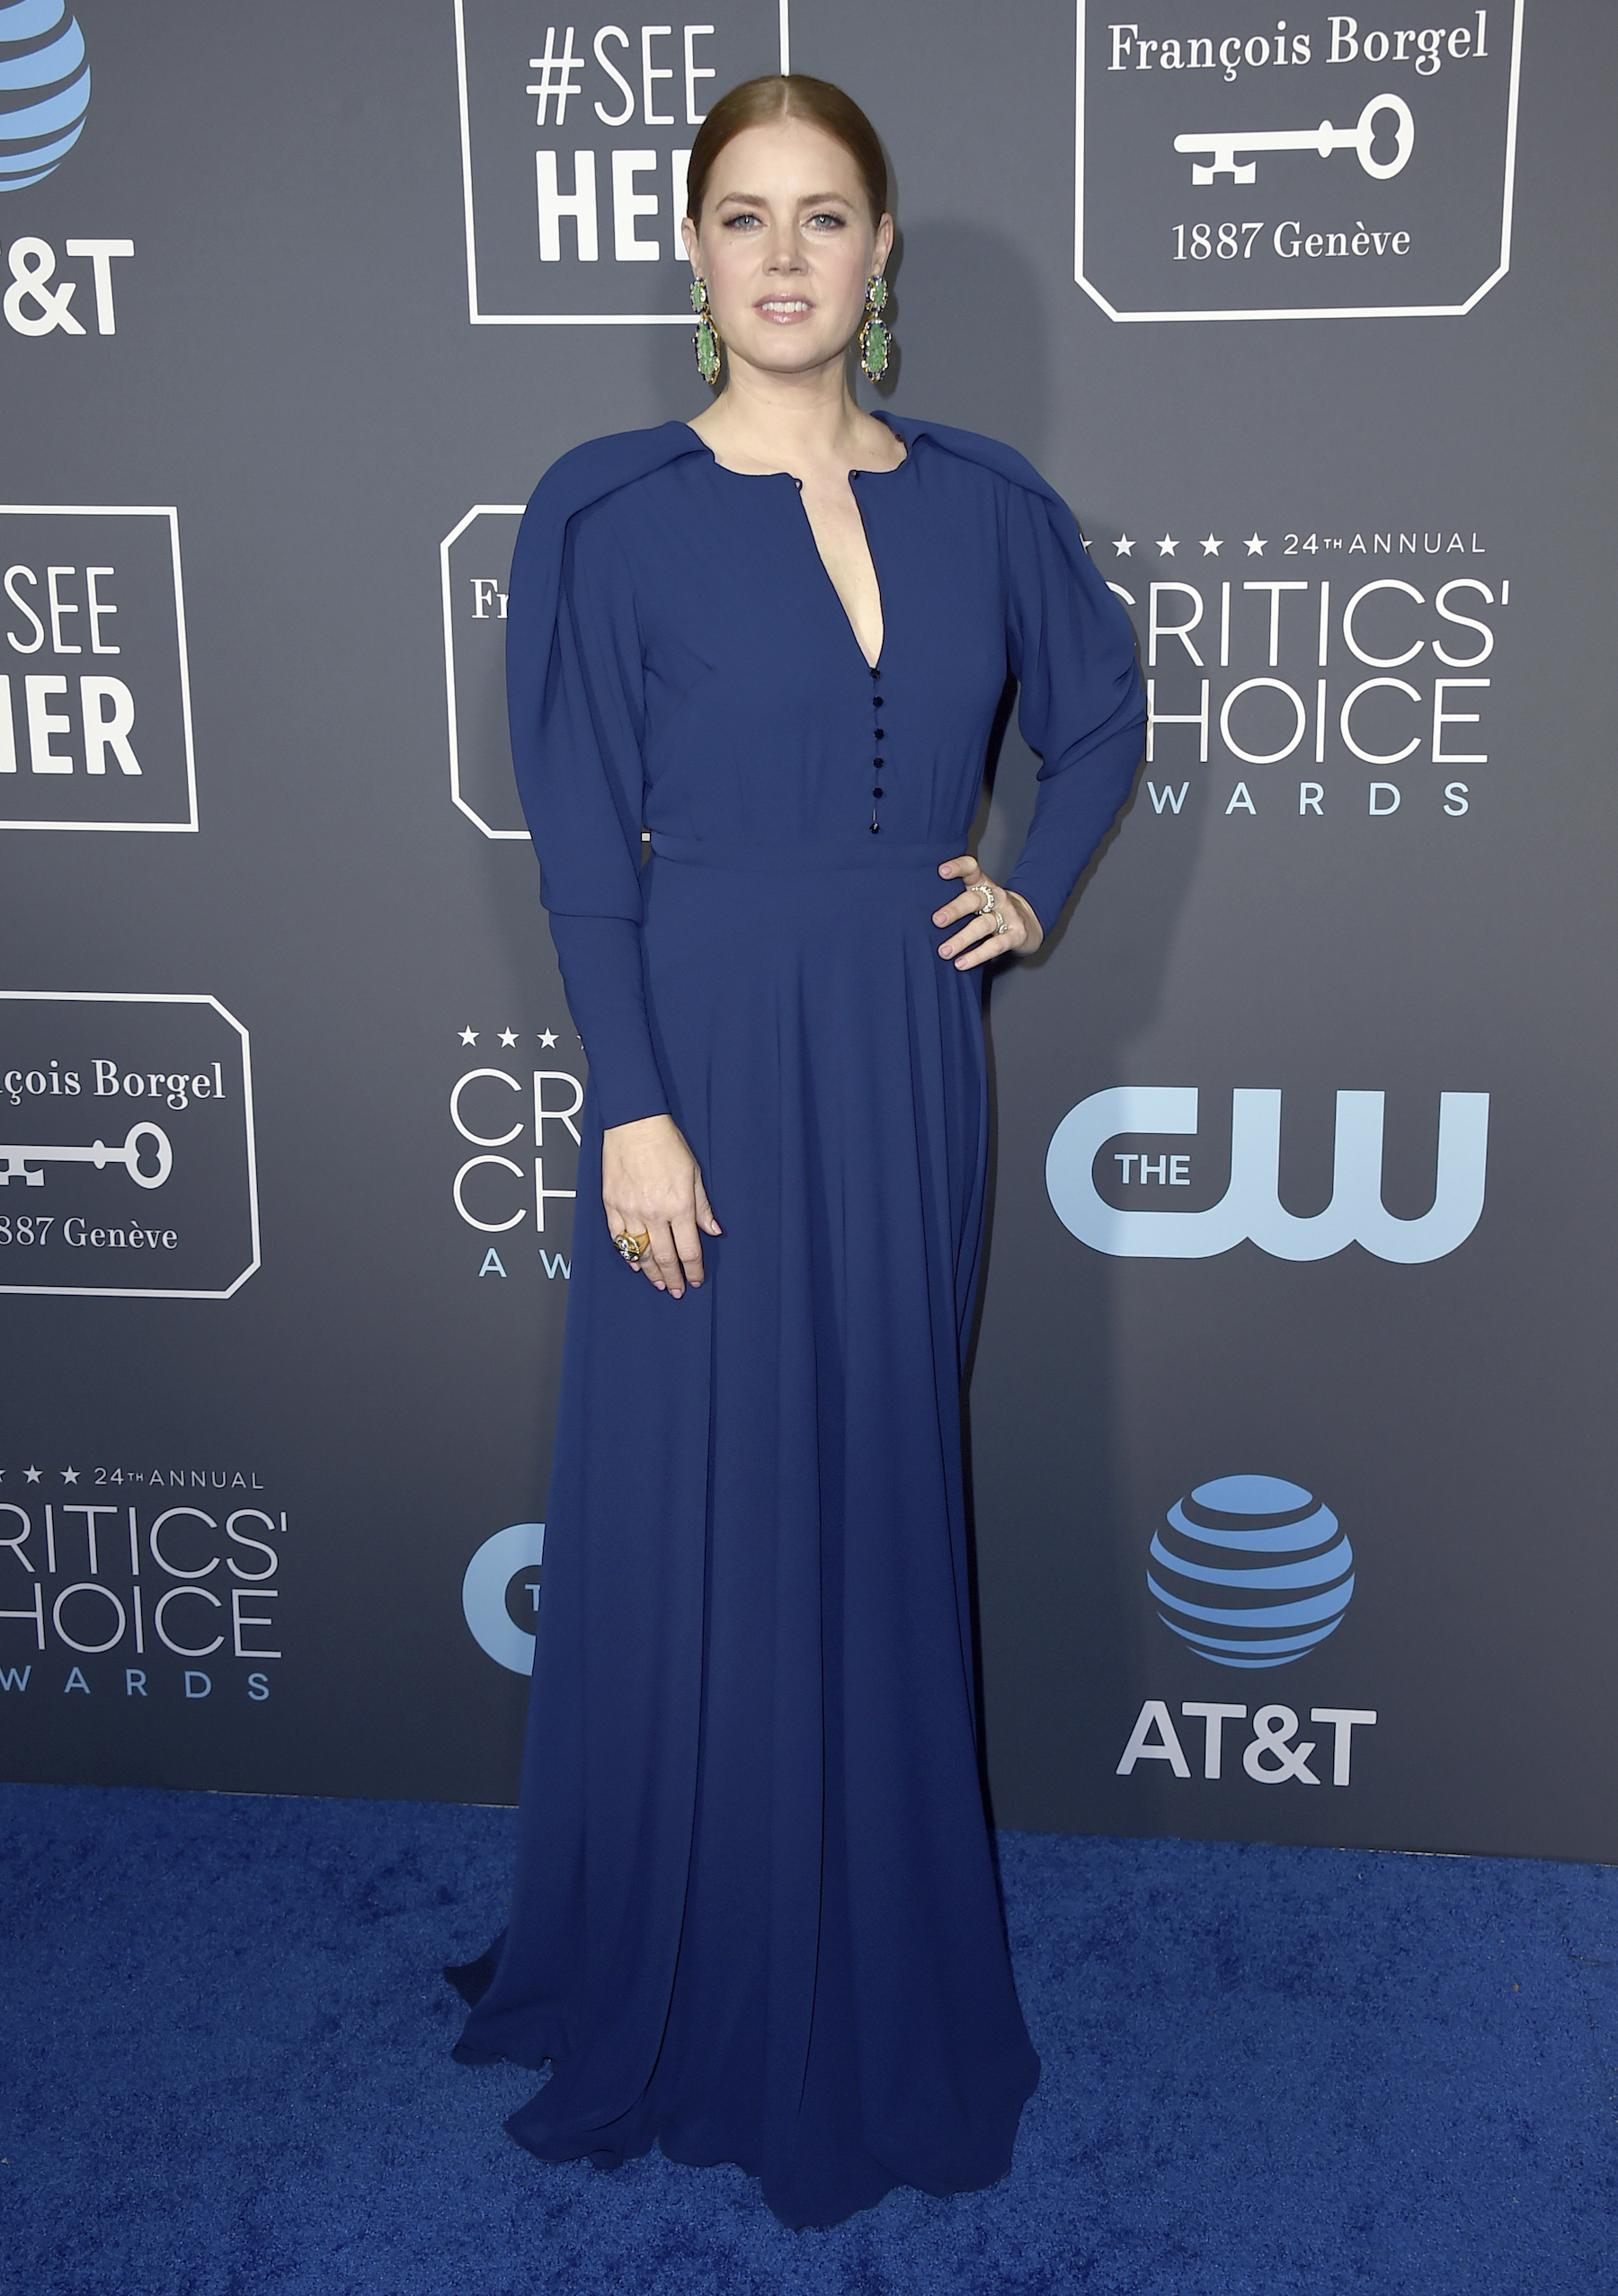 "<div class=""meta image-caption""><div class=""origin-logo origin-image ap""><span>AP</span></div><span class=""caption-text"">Amy Adams arrives at the 24th annual Critics' Choice Awards on Sunday, Jan. 13, 2019, at the Barker Hangar in Santa Monica, Calif. (Jordan Strauss/Invision/AP)</span></div>"